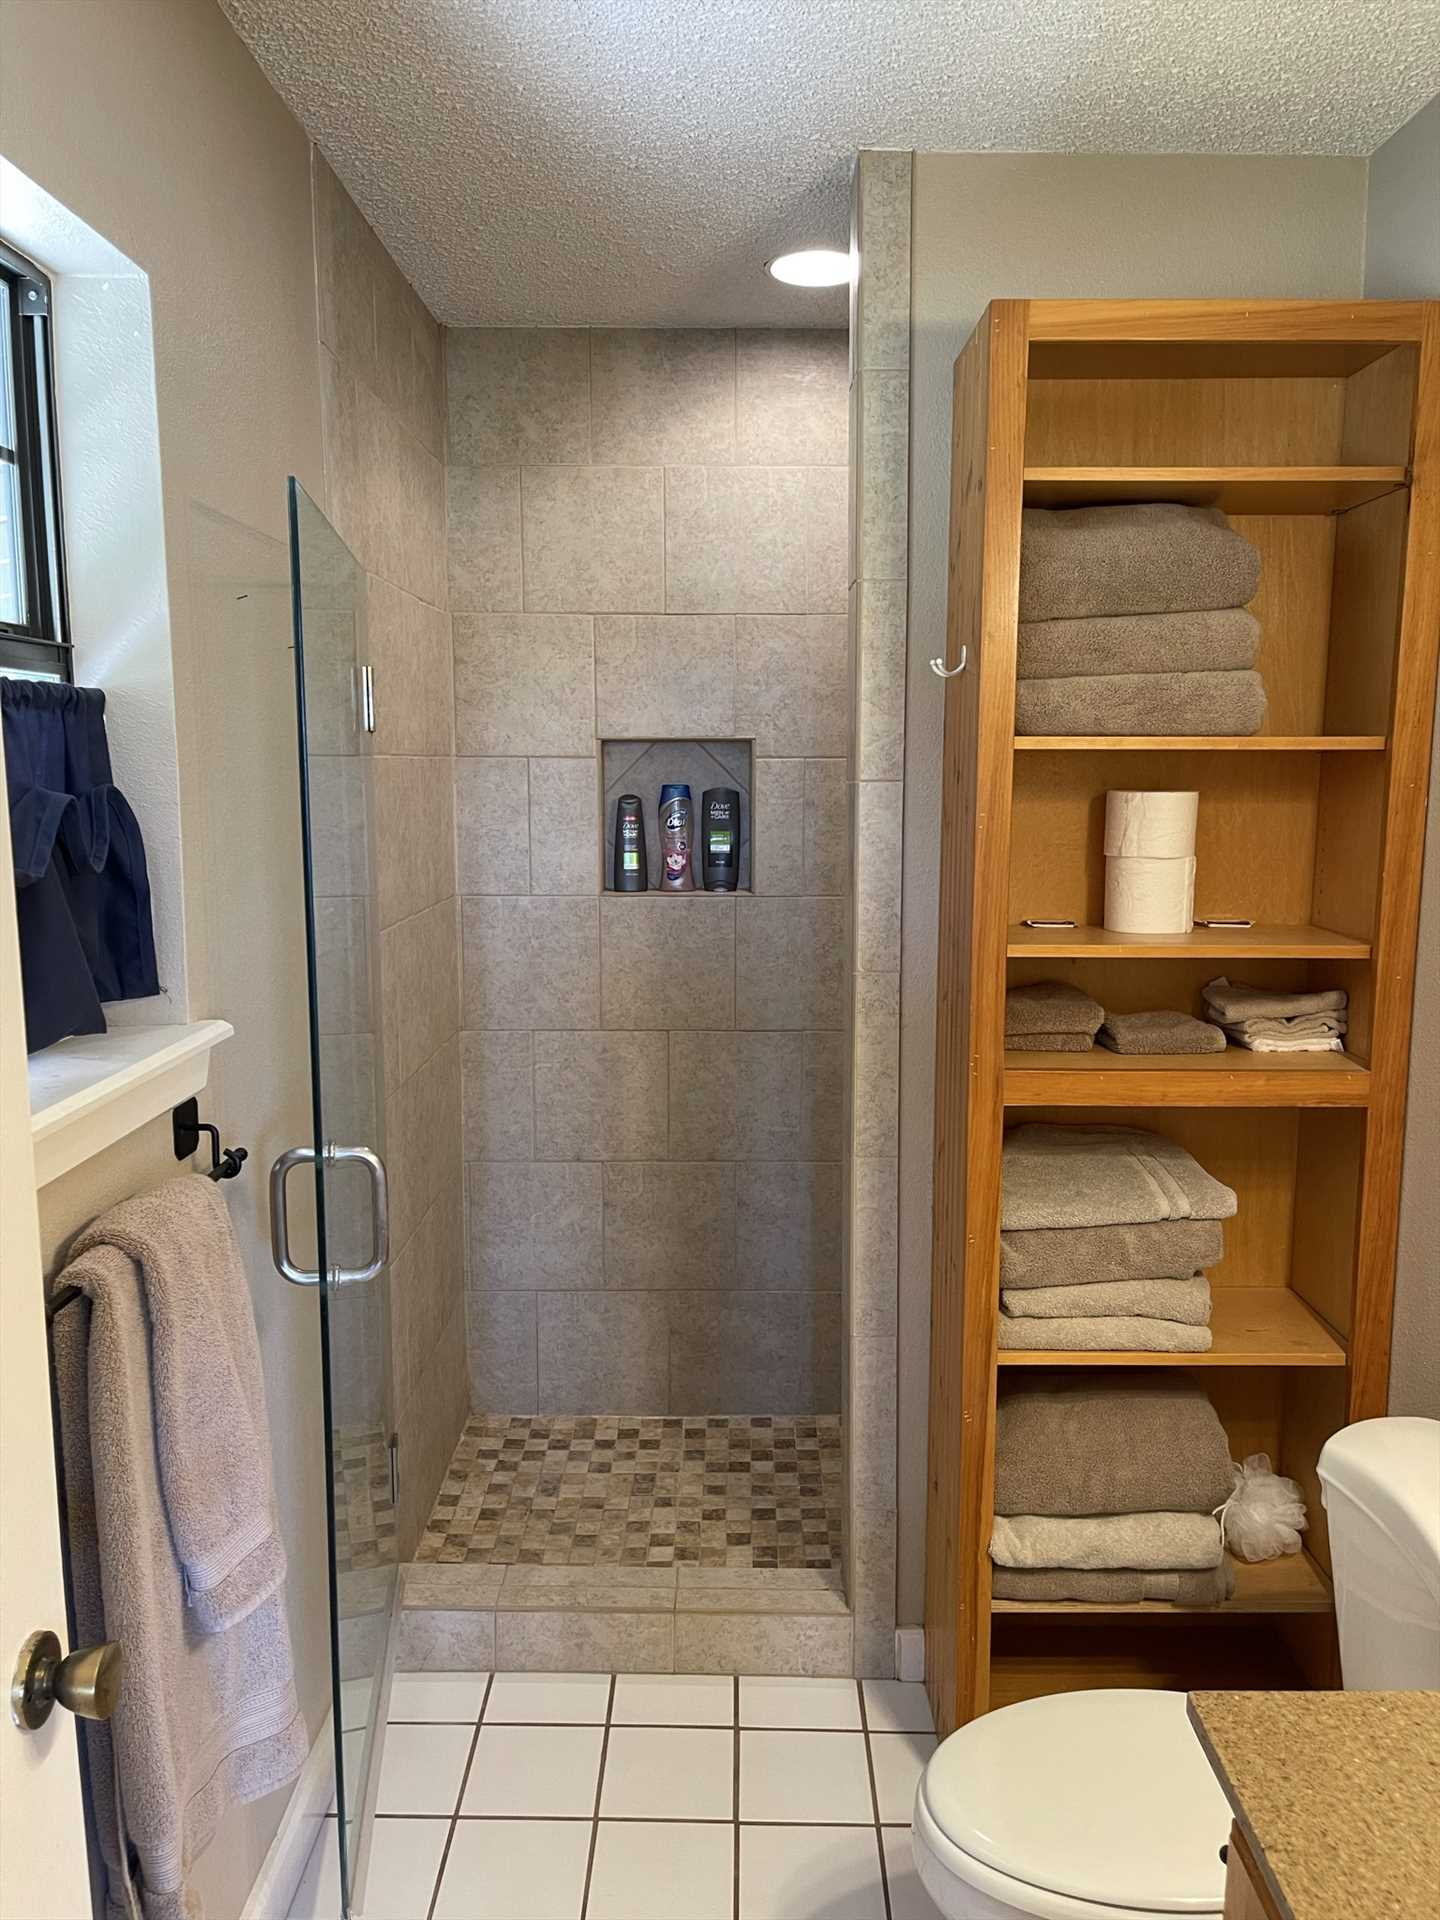 The sparkling-clean master bath features a nice glass-door step-in shower.